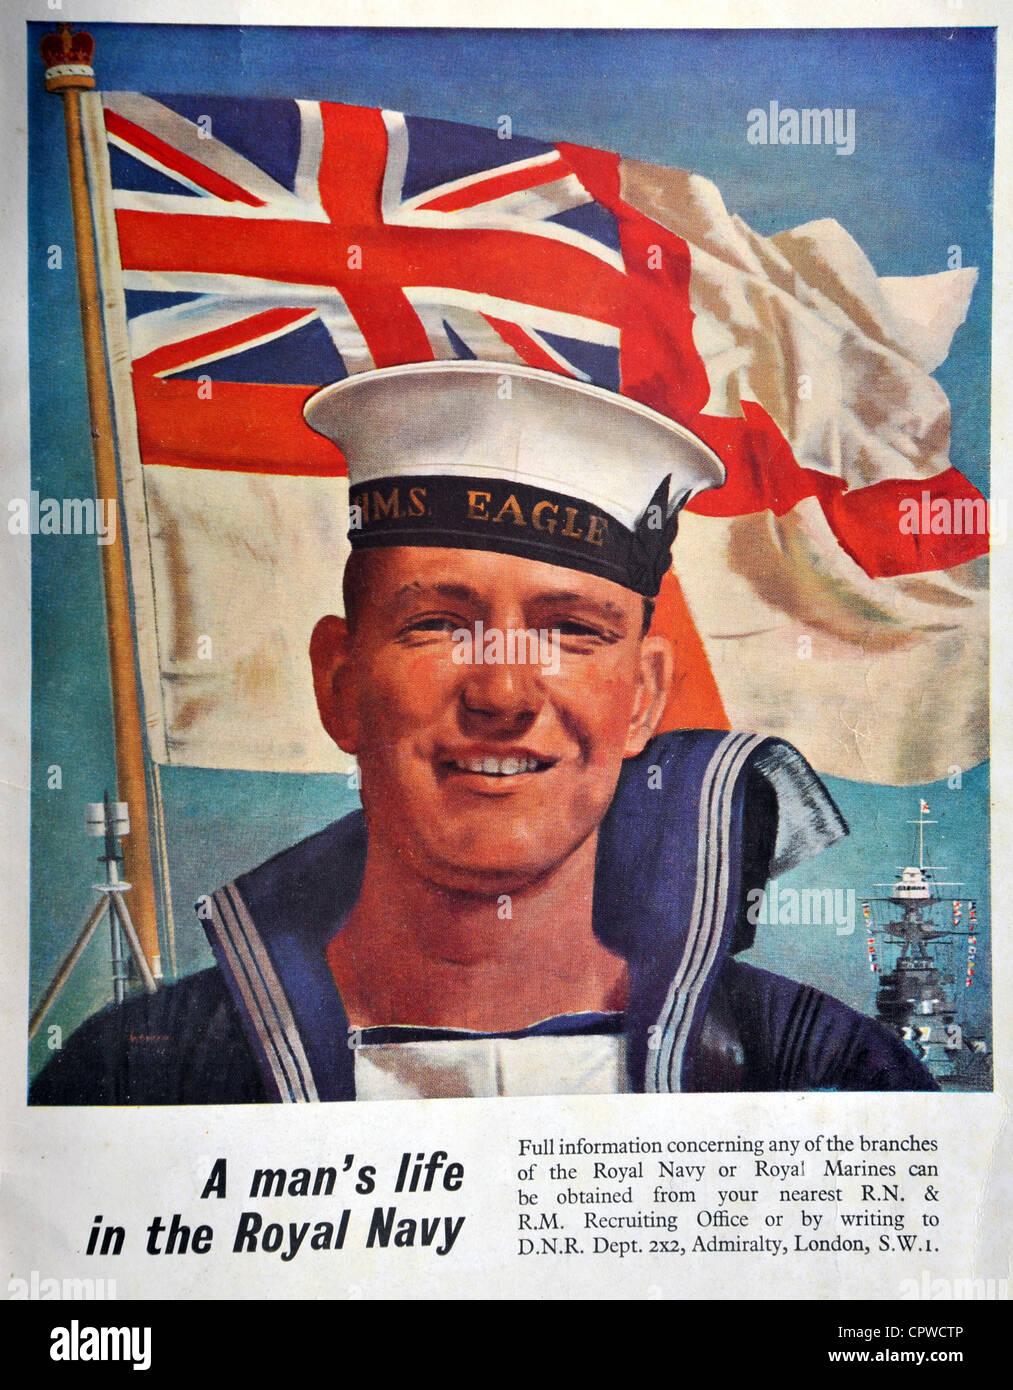 Royal Navy recruitment advert from 1953. Britain. - Stock Image